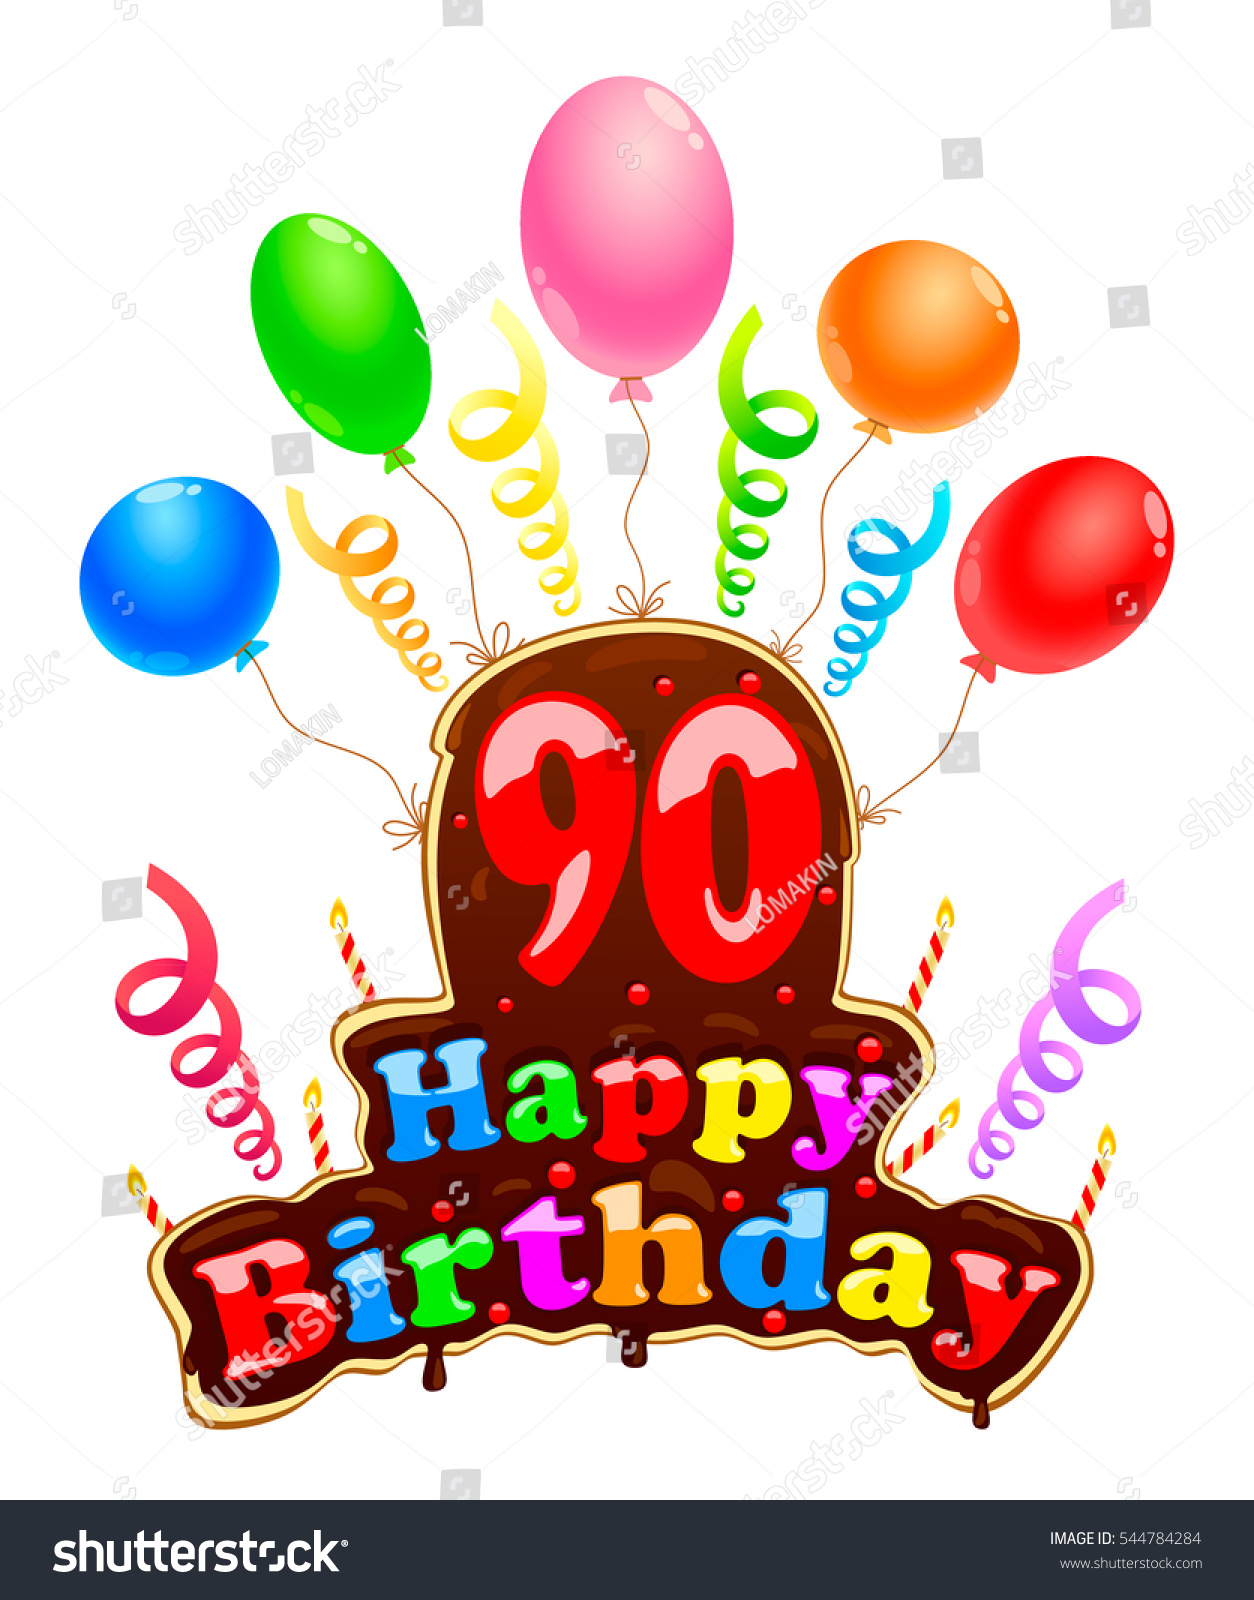 Happy Birthday Sign In The Form Of A Cake Banner Celebration Ninety Years With Balloons And Ribbons 90 Congratulations For